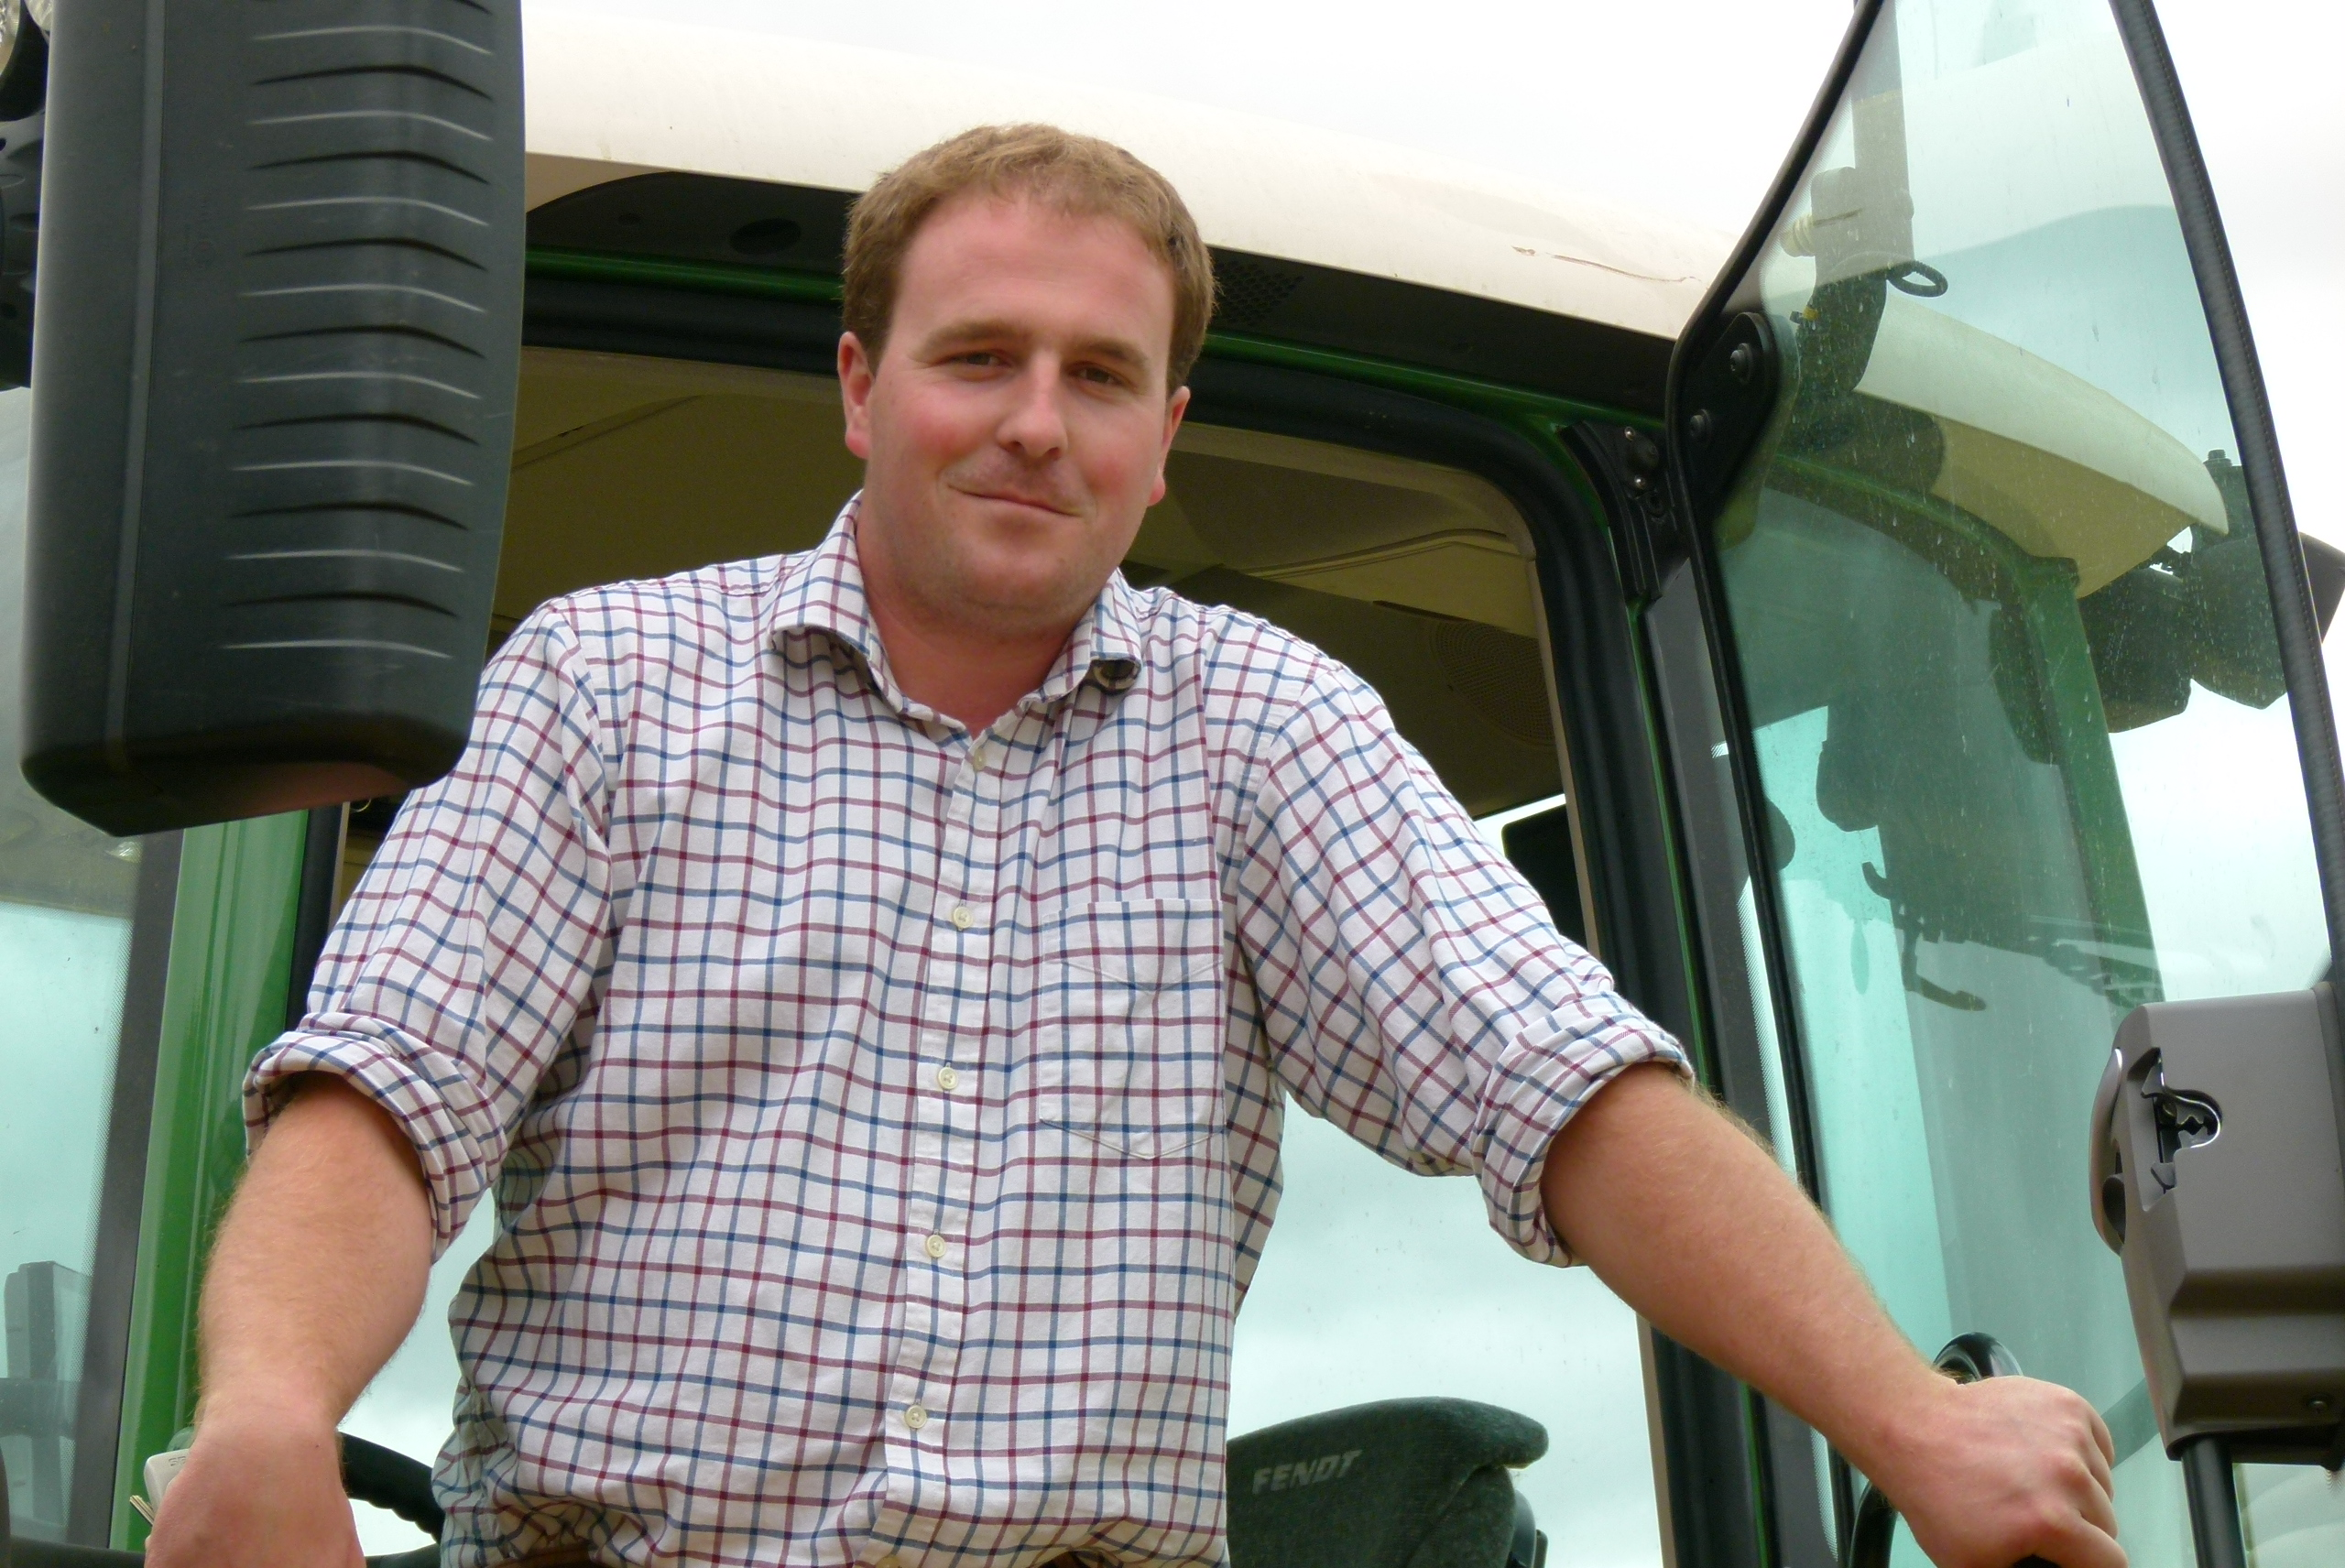 Welcome Ed Ford, Chair of NFYFC Council